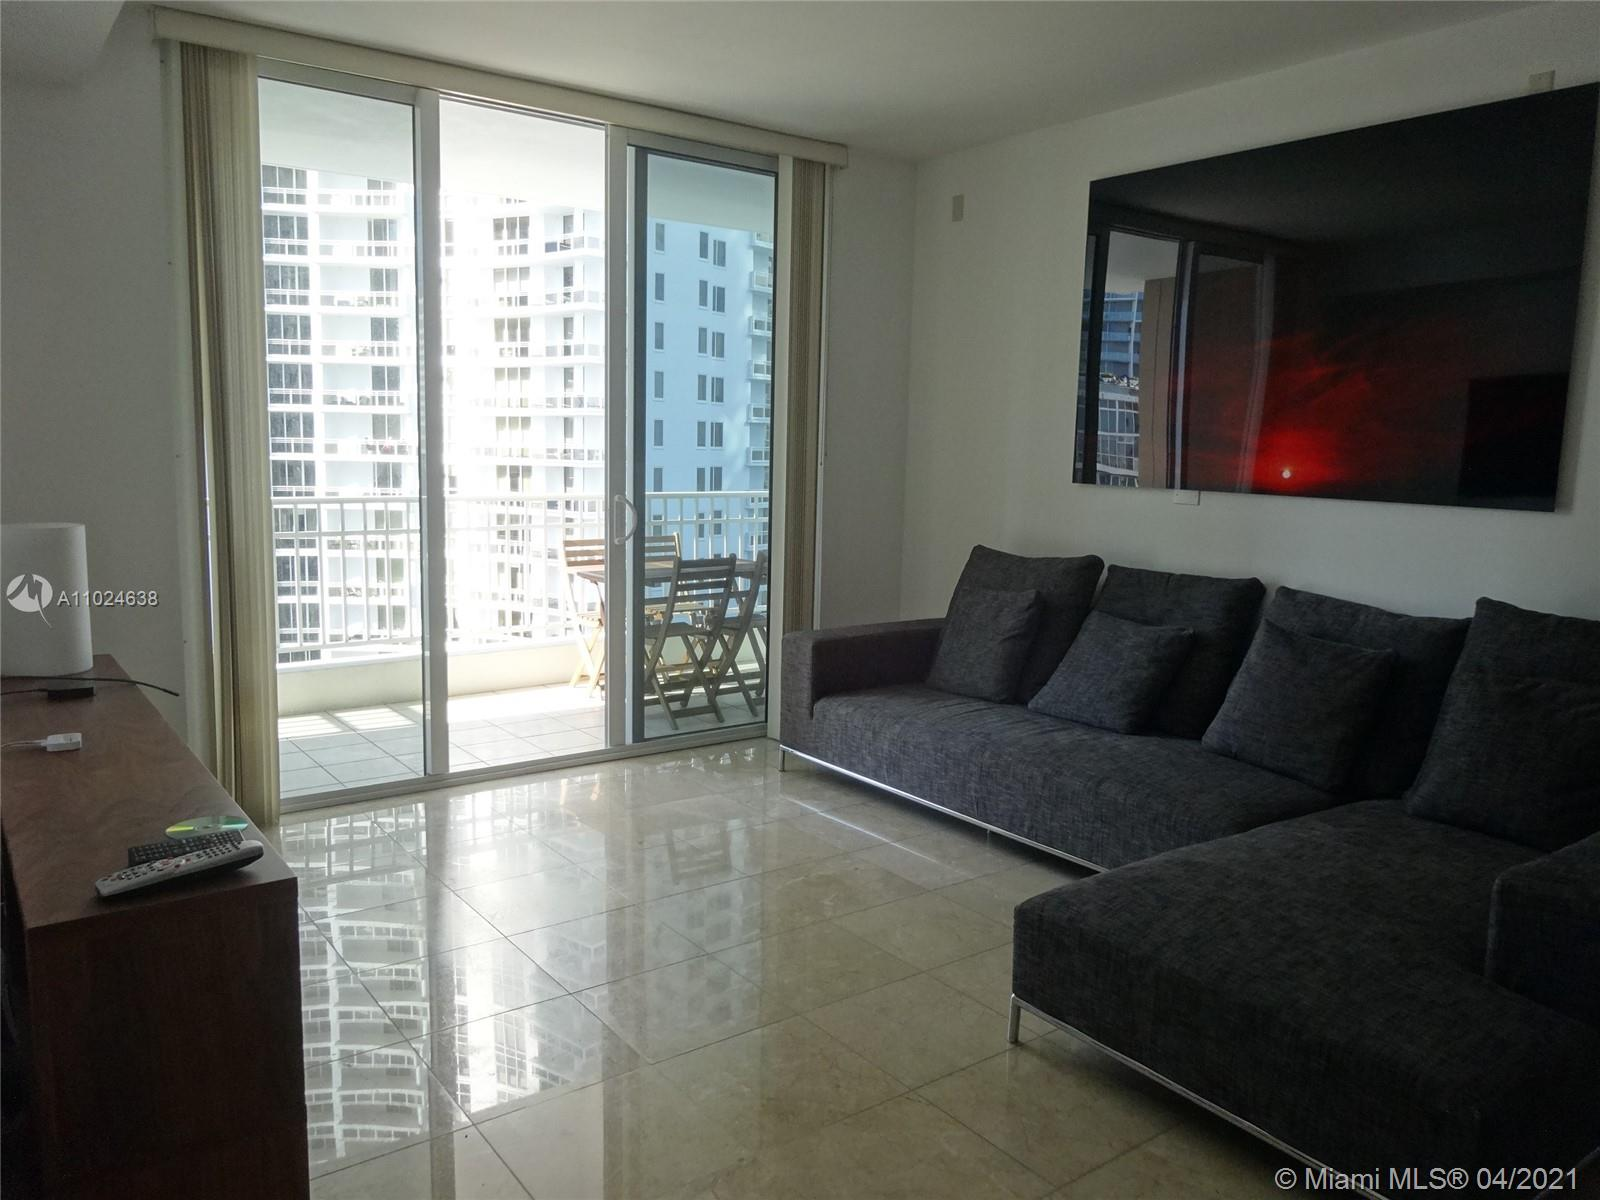 Courts Brickell Key #1108 - 801 Brickell Key Blvd #1108, Miami, FL 33131